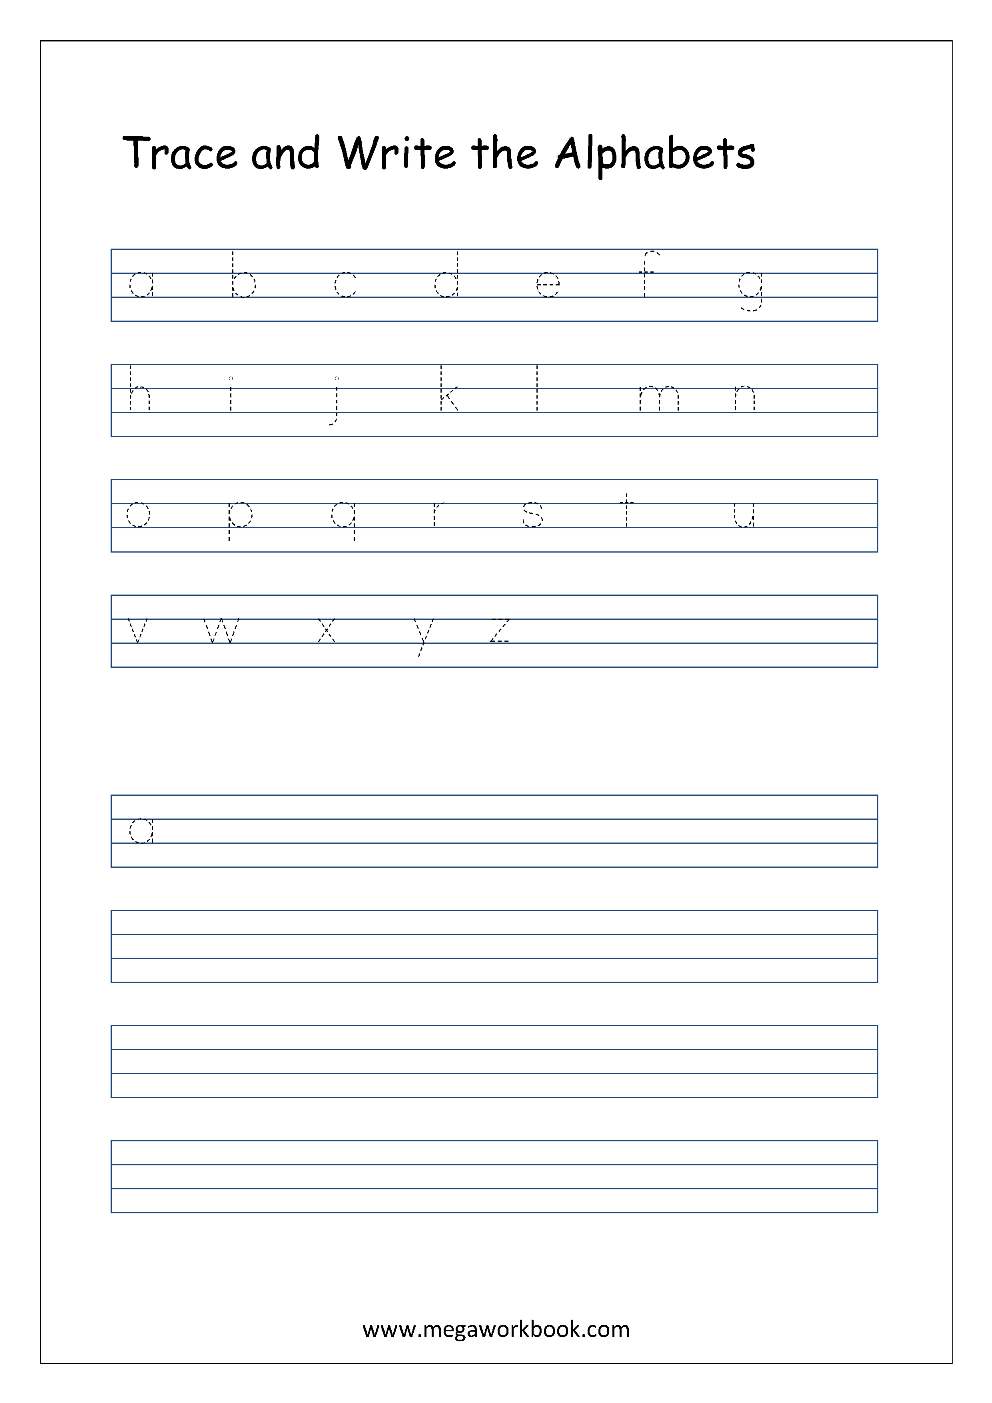 Free English Worksheets - Alphabet Writing (Small Letters